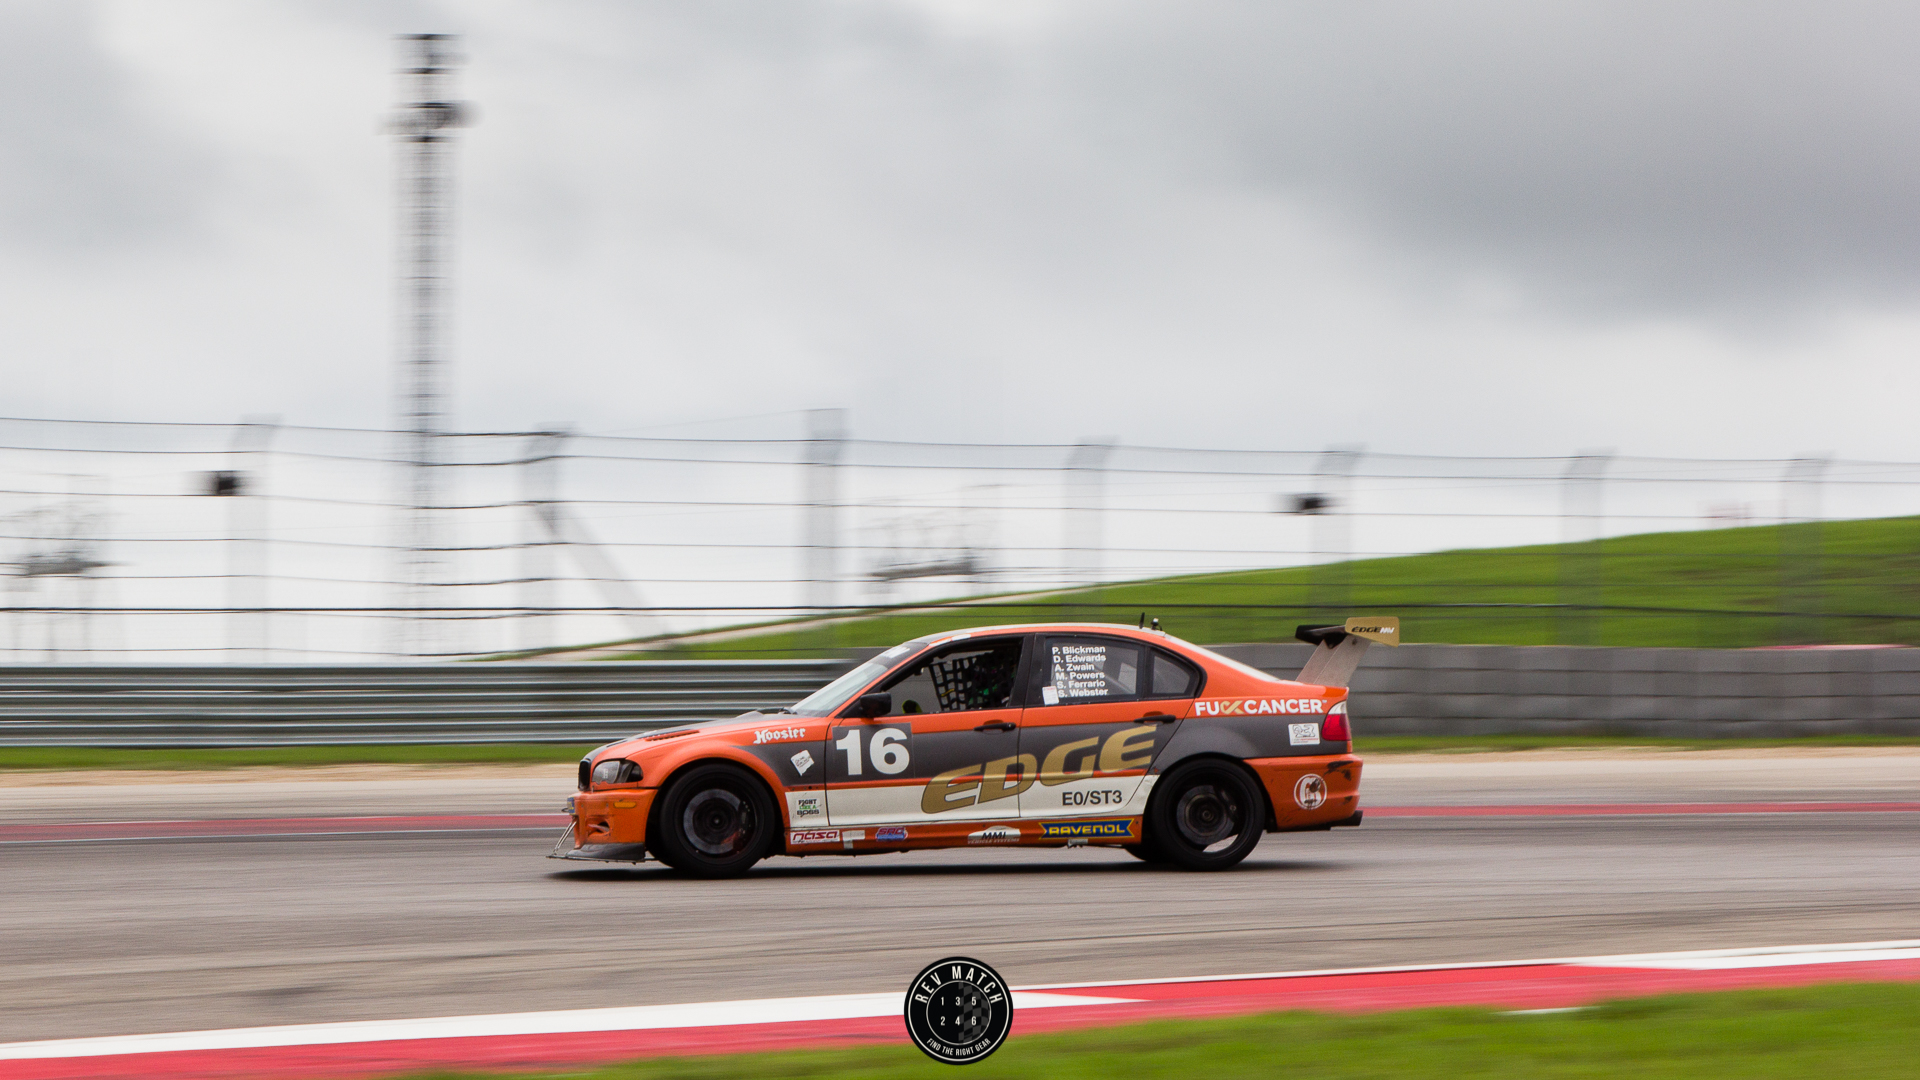 RMM x NASA at COTA 2018-139.jpg